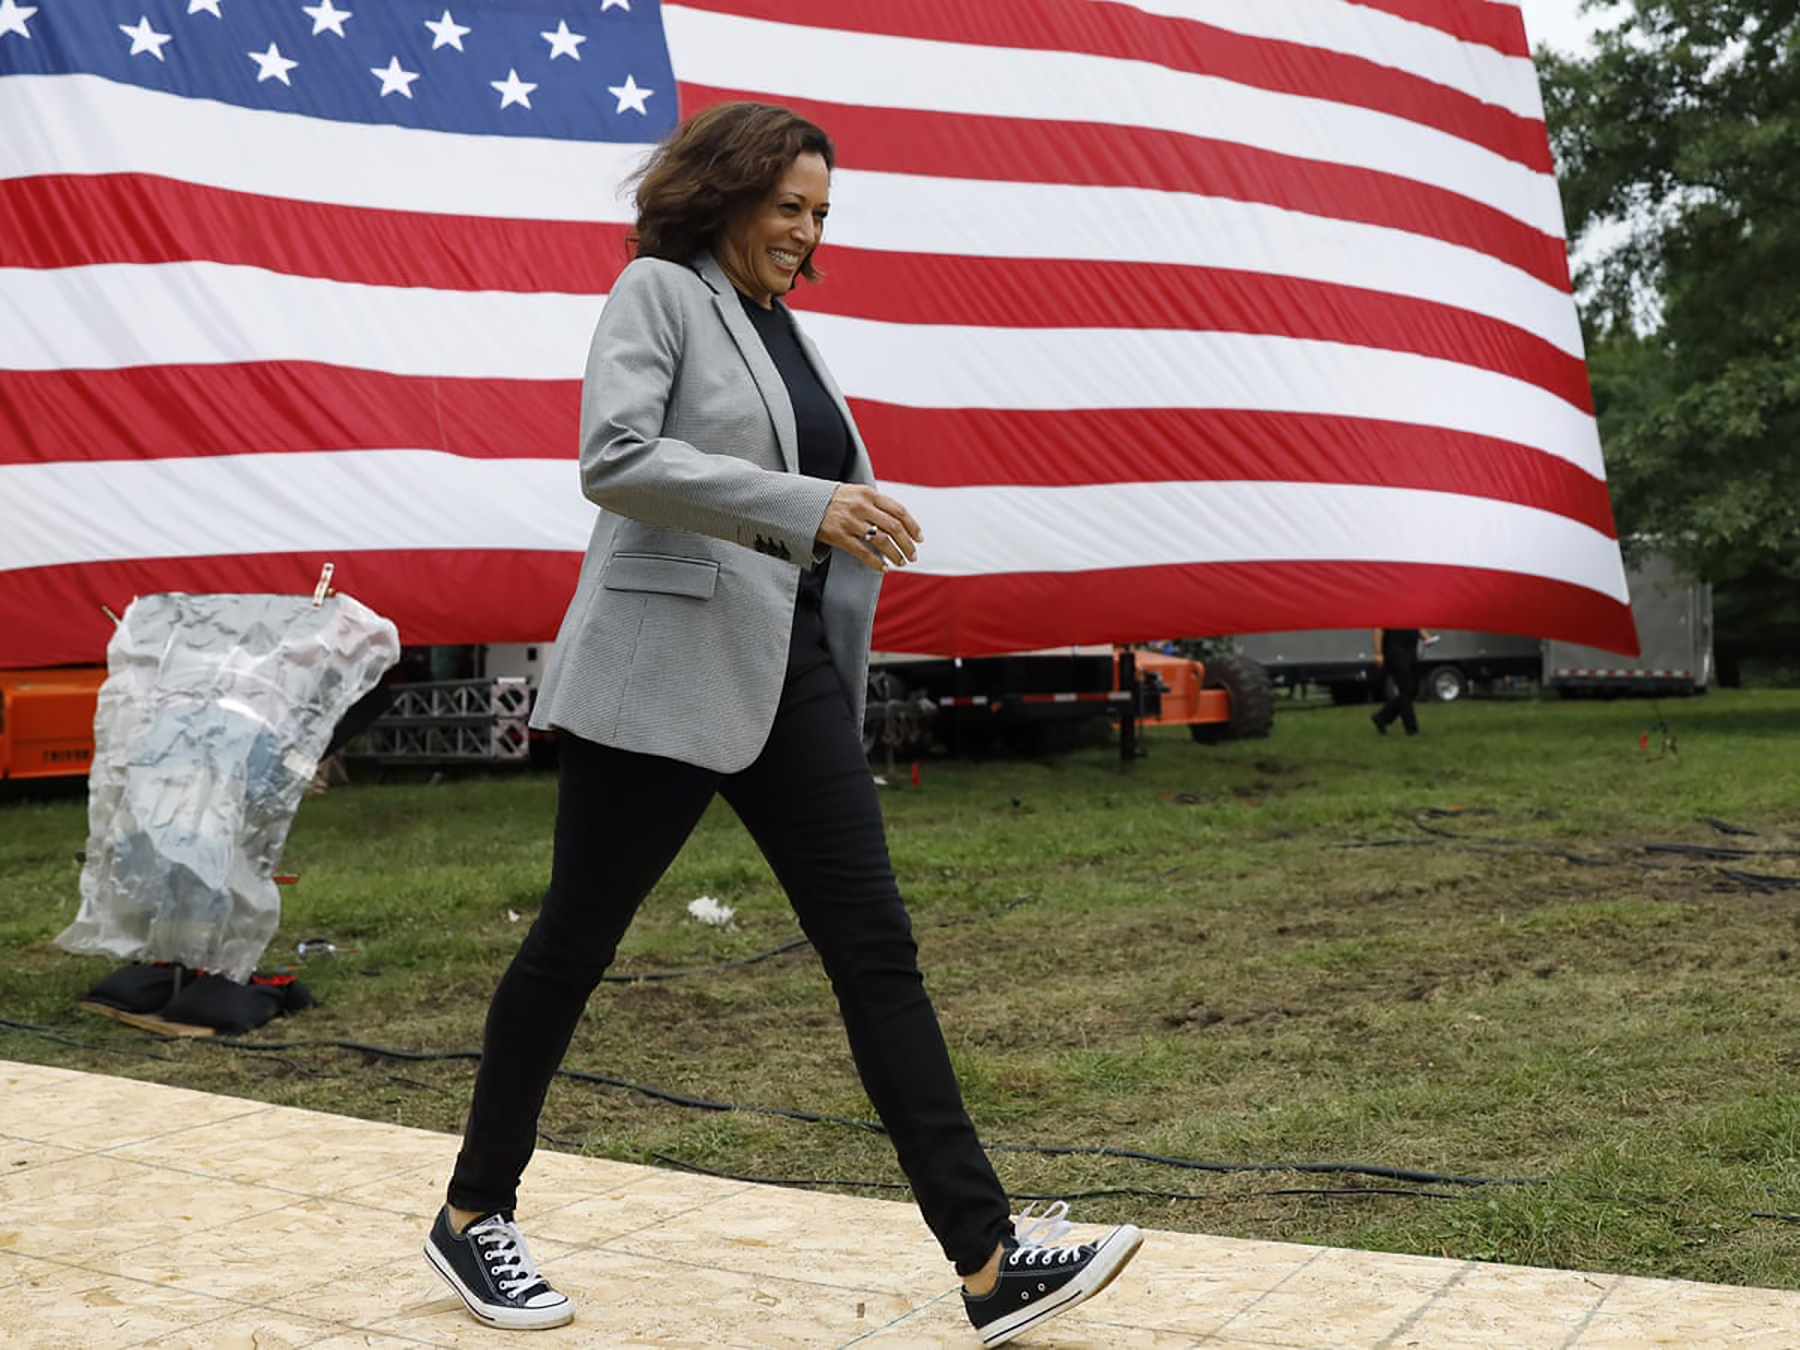 Kamala Harris: Vice President with Style